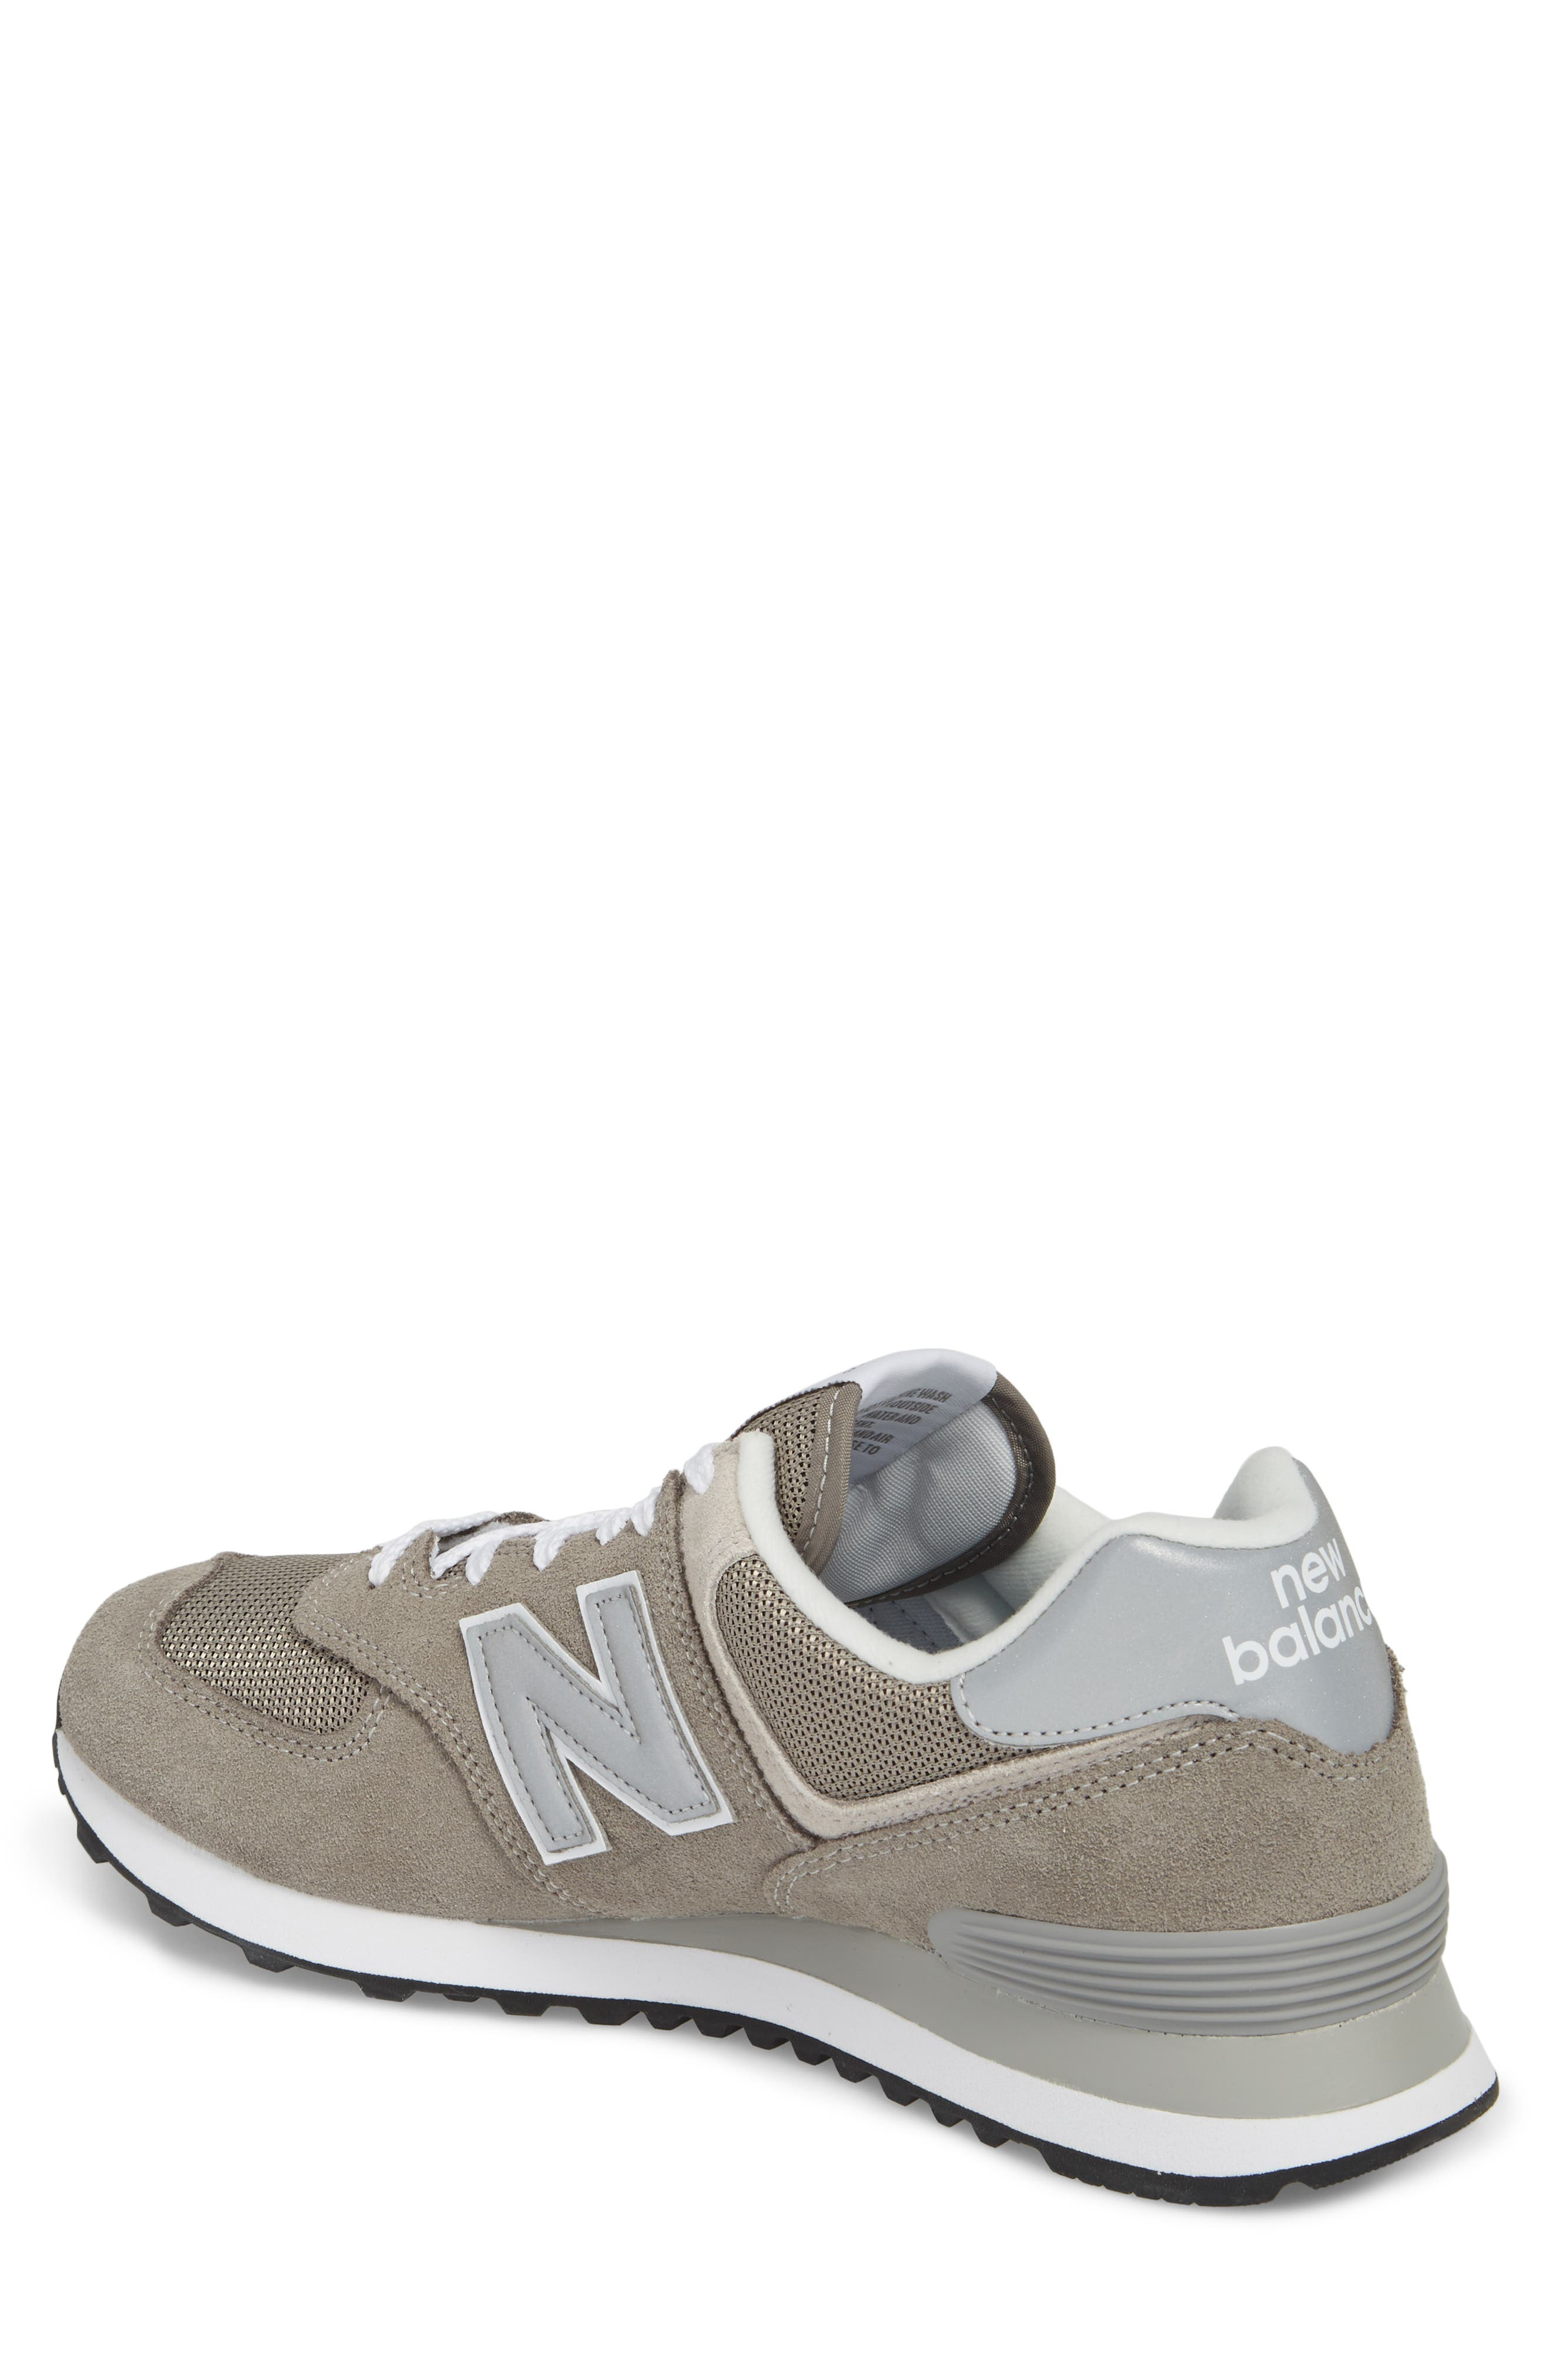 574 Classic Sneaker,                             Alternate thumbnail 2, color,                             Grey